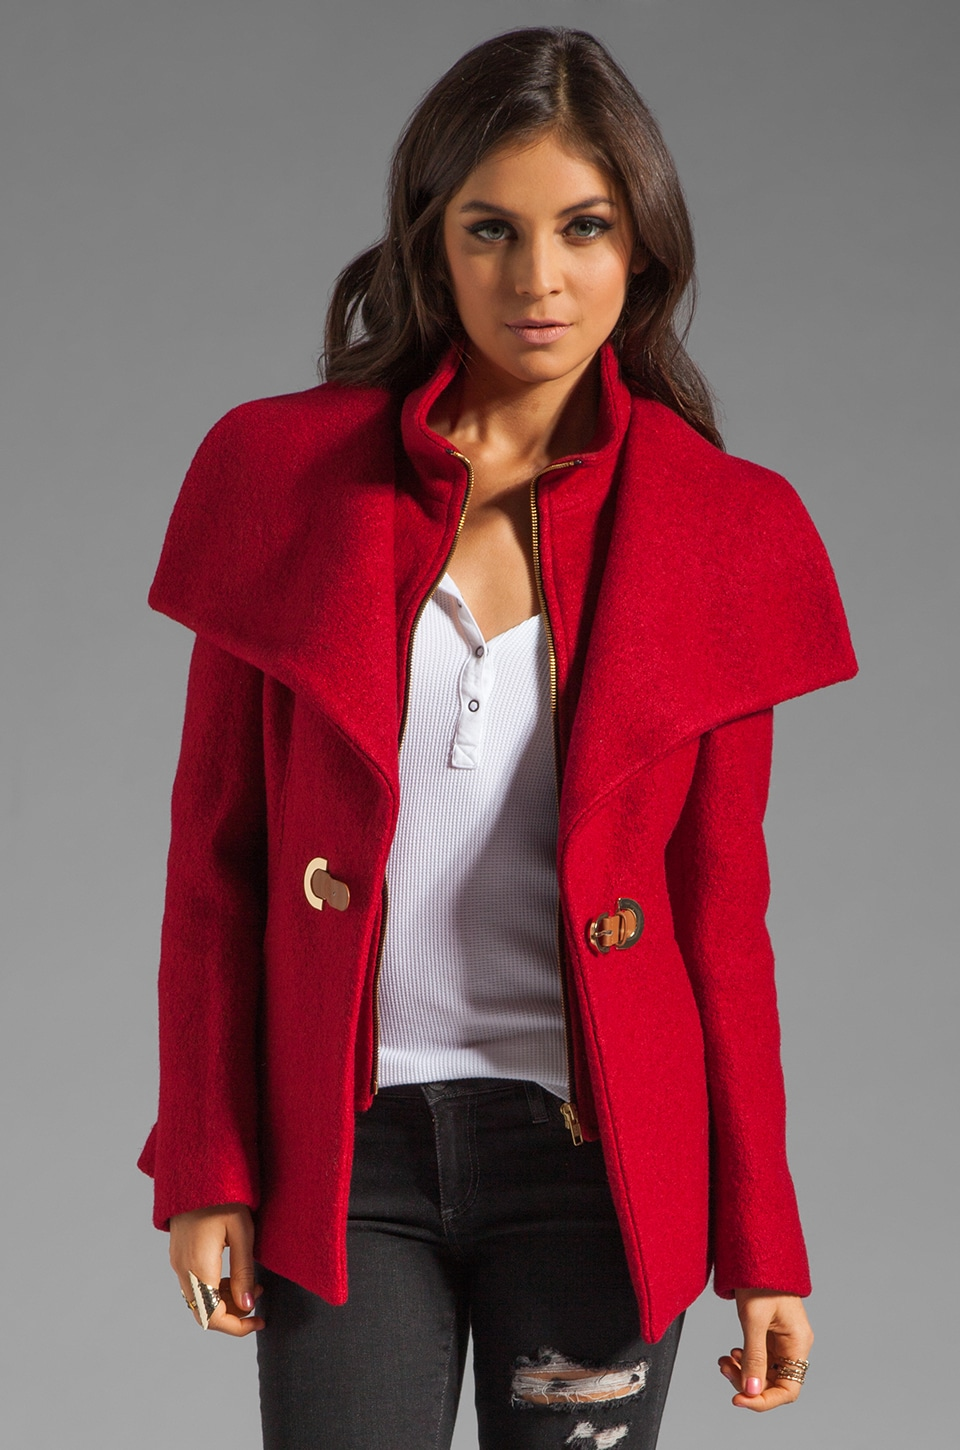 Soia & Kyo Bold Wool Verona Jacket in Red